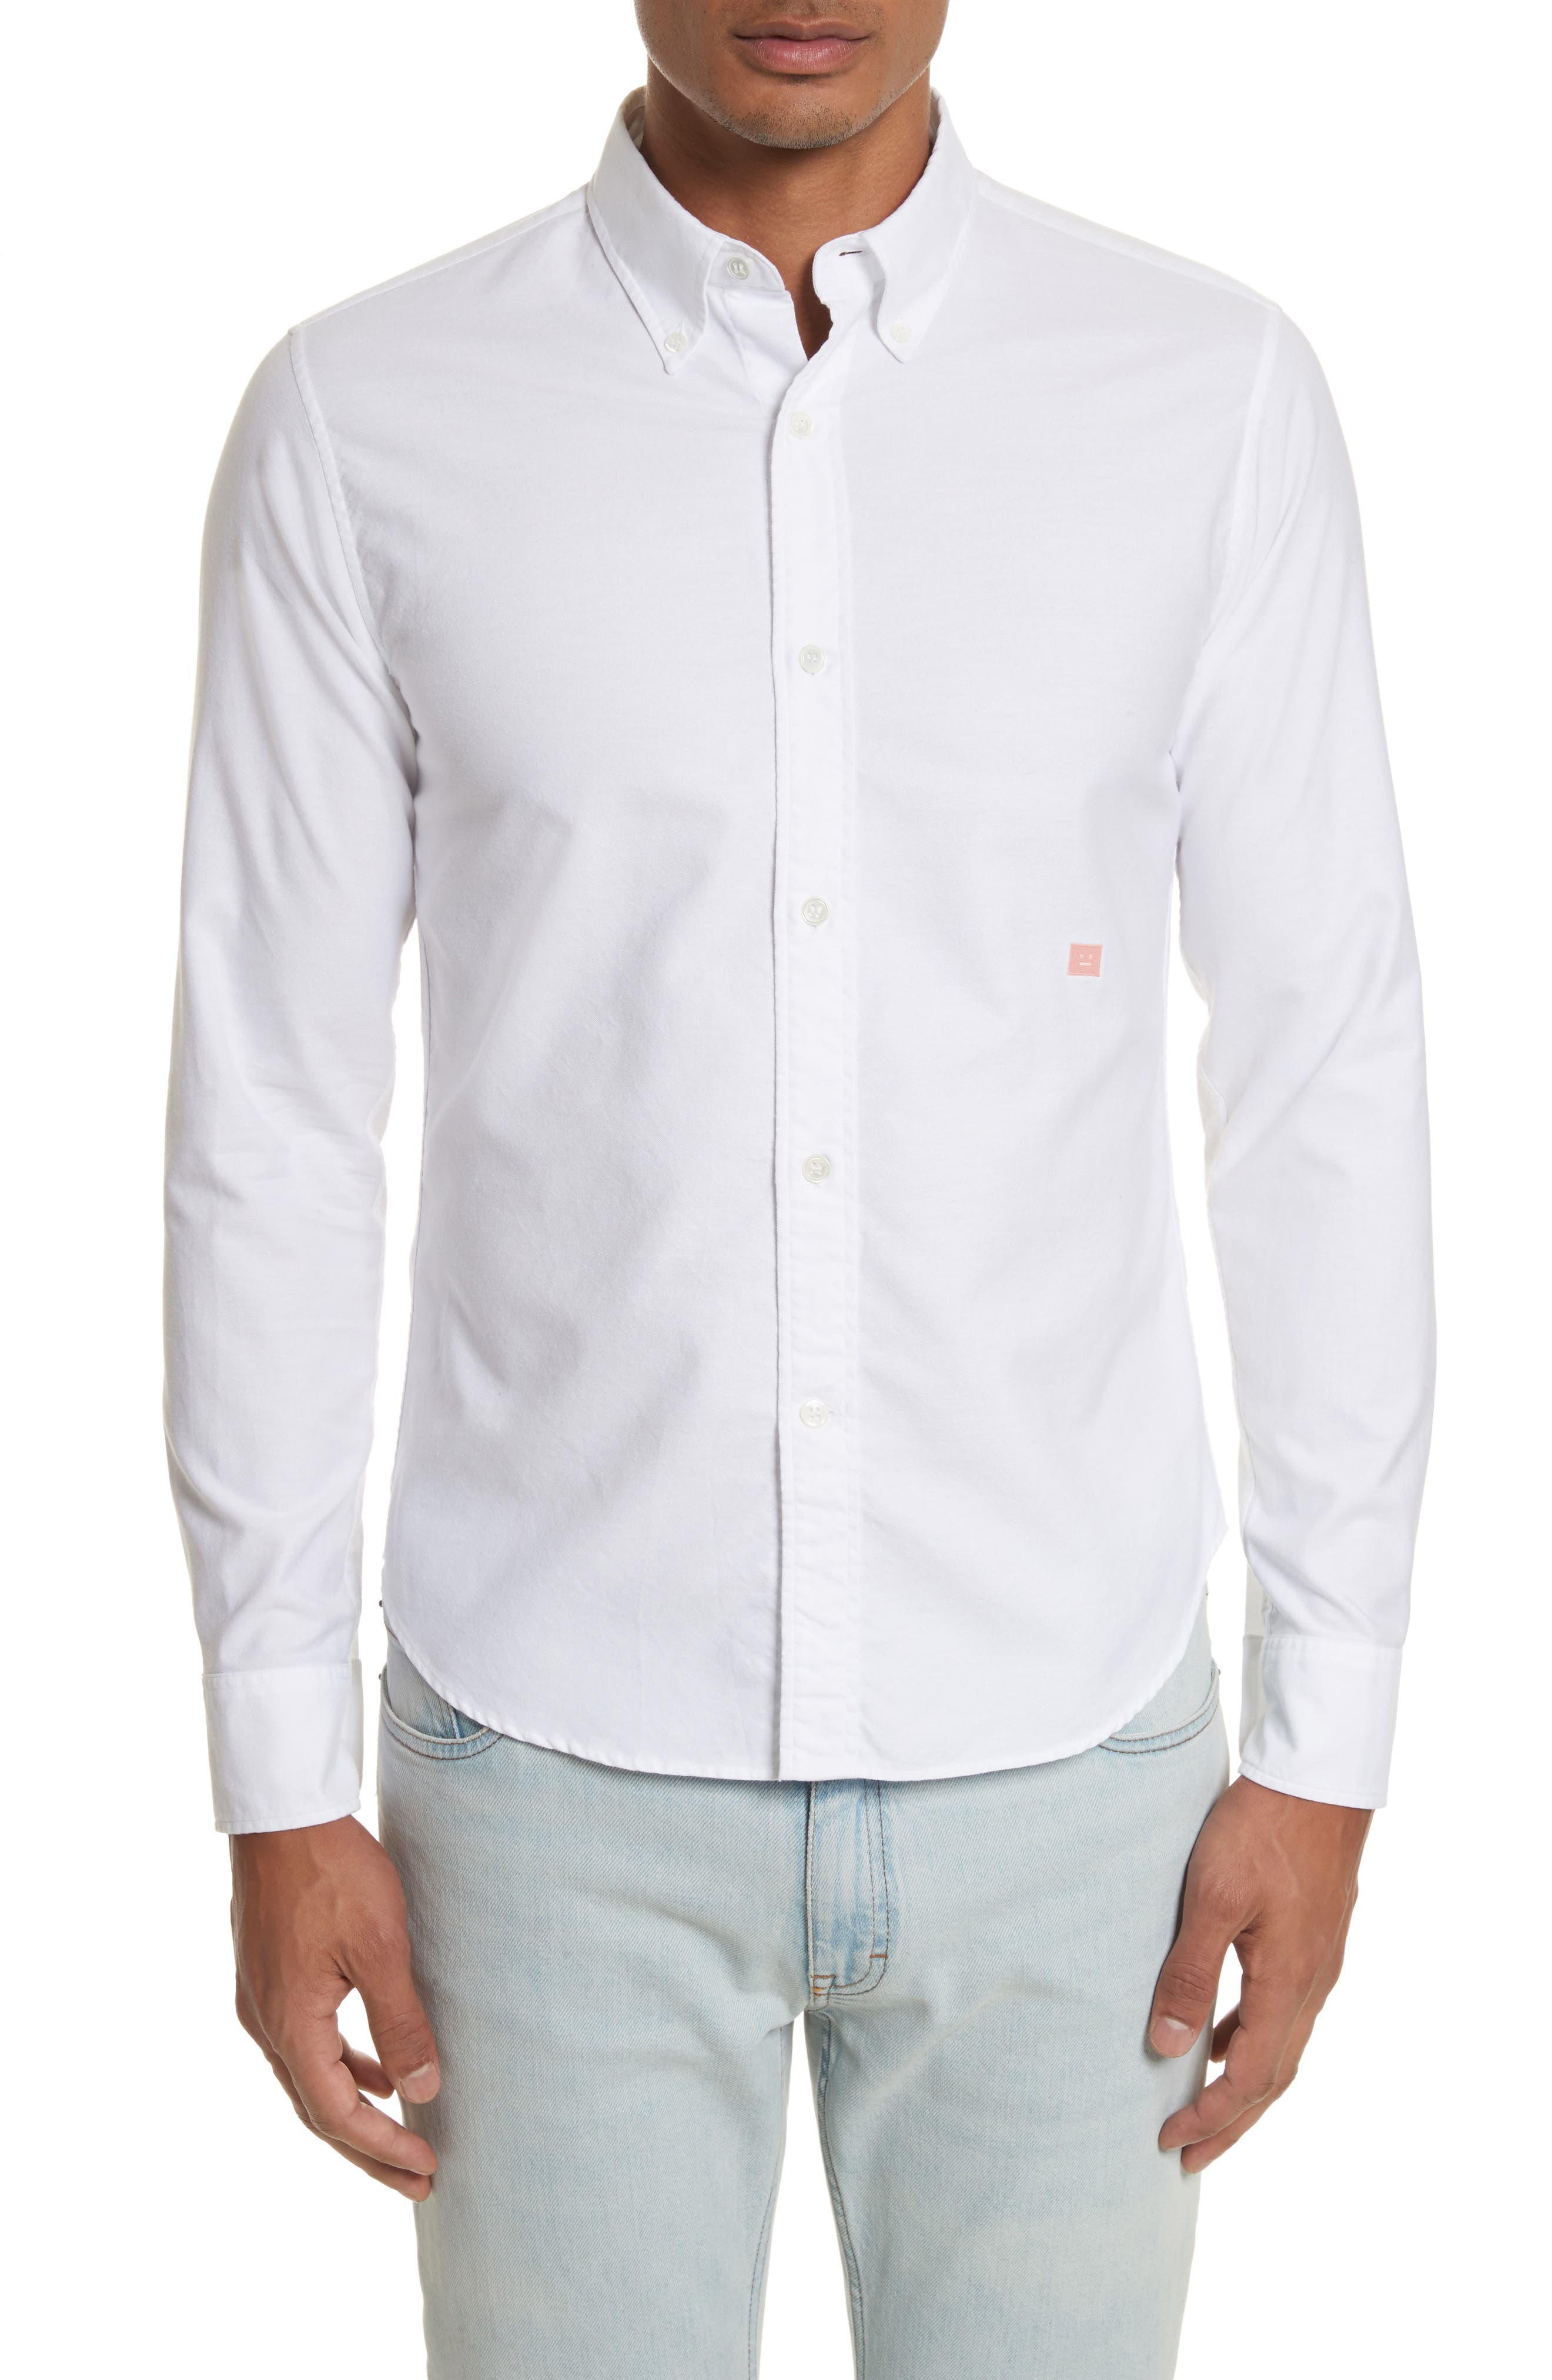 Ohio Face Patch Oxford Shirt,                         Main,                         color,